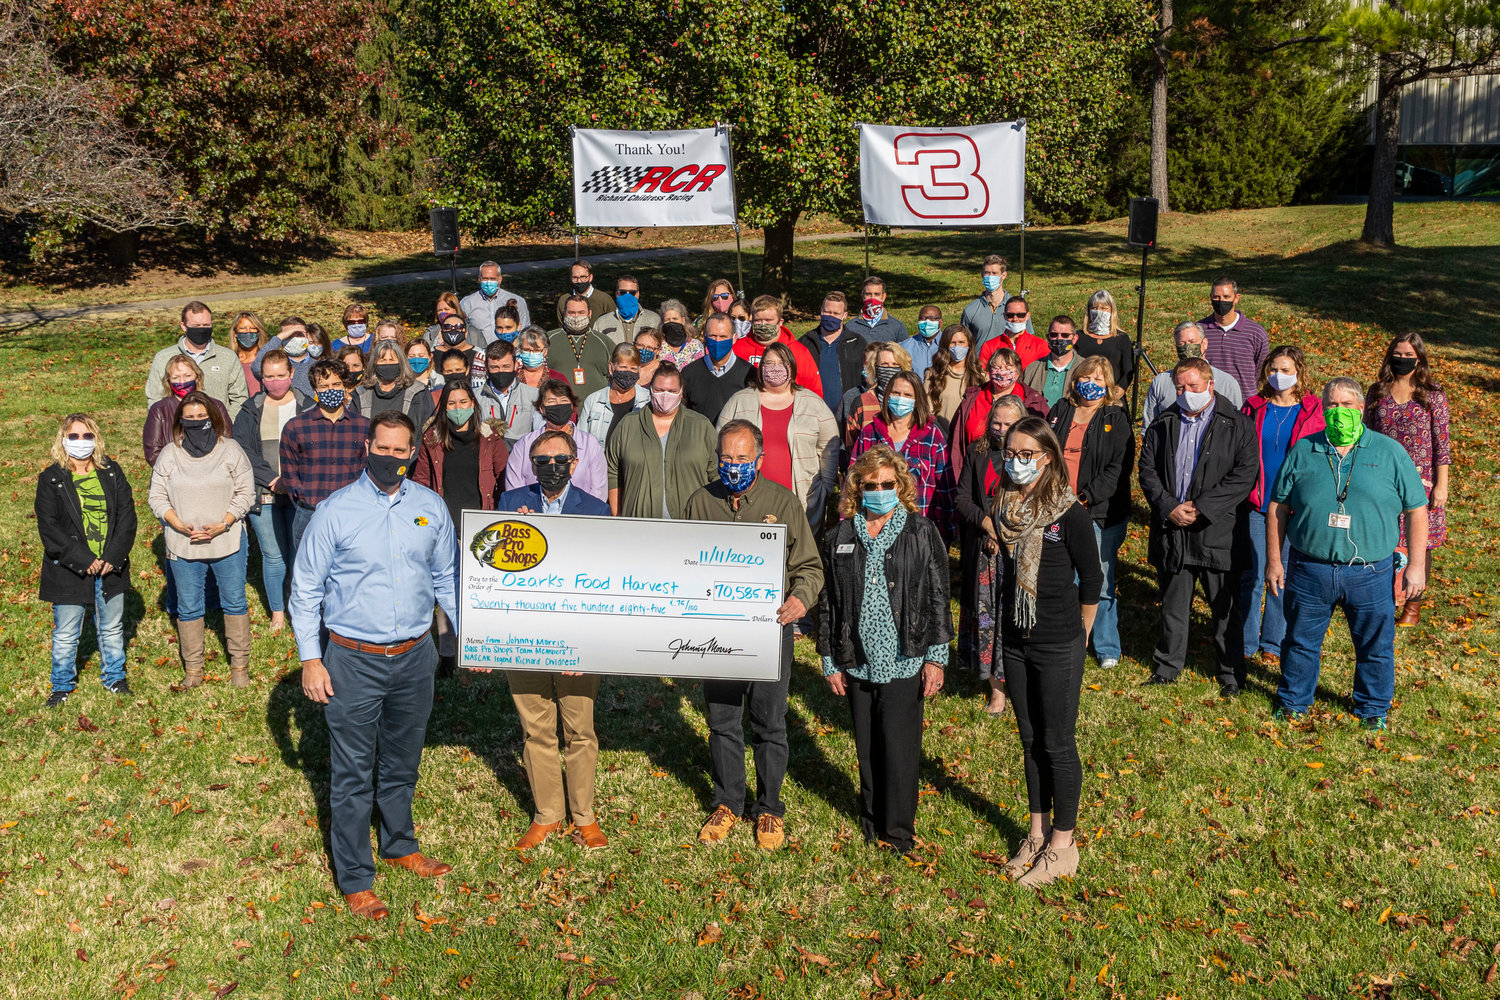 Ozarks Food Harvest representatives receive a $70,500 check from Bass Pro Shops founder and CEO Johnny Morris and Bass Pro team members.